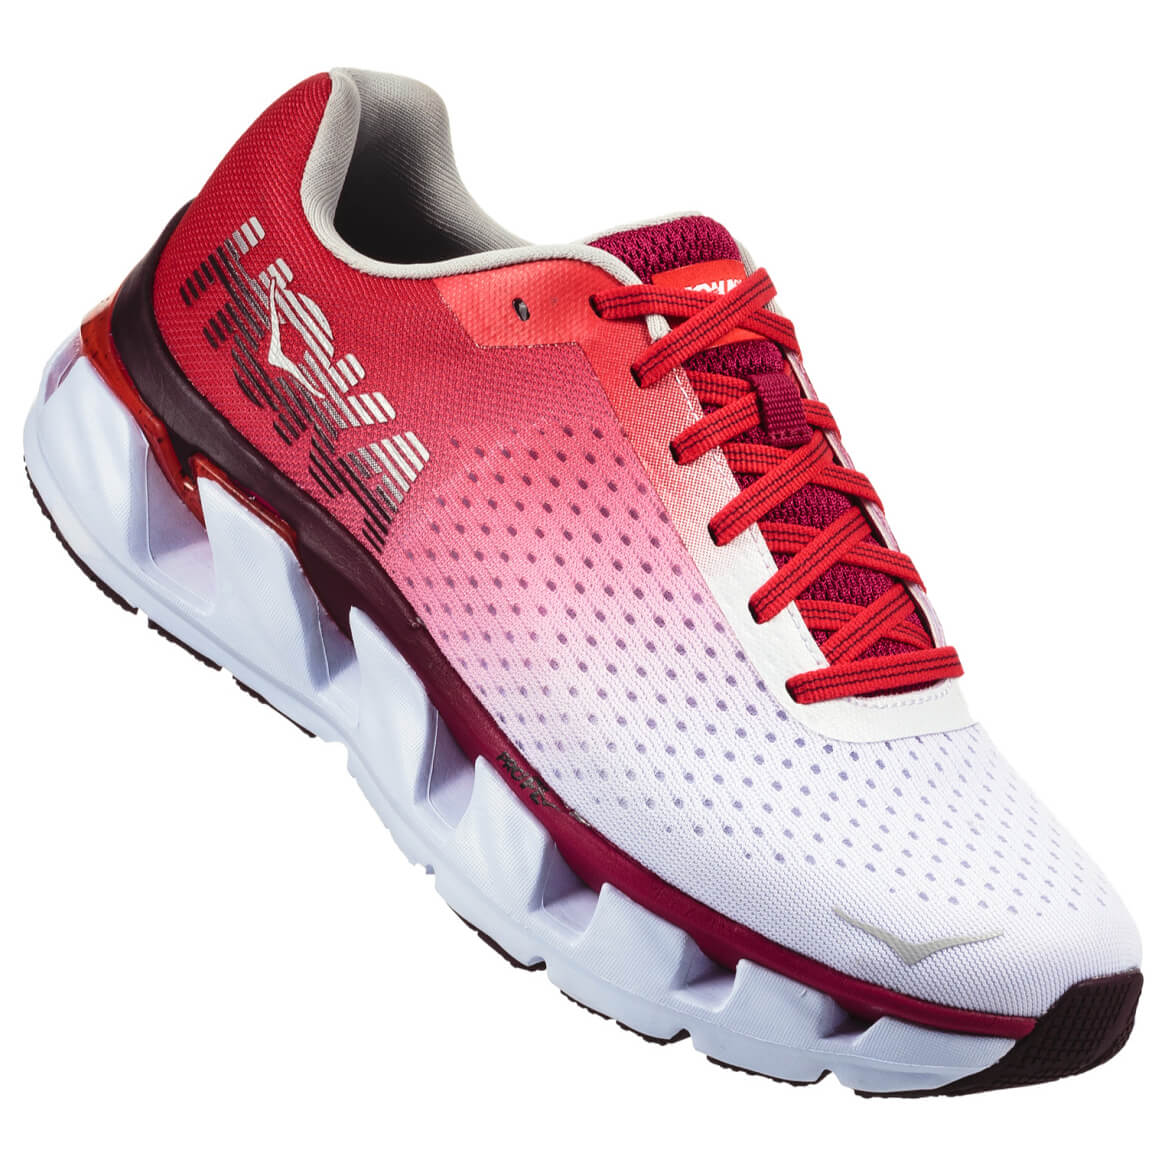 Hoka One One - Women's Elevon - Runningschuhe White / Cherries Jubilee